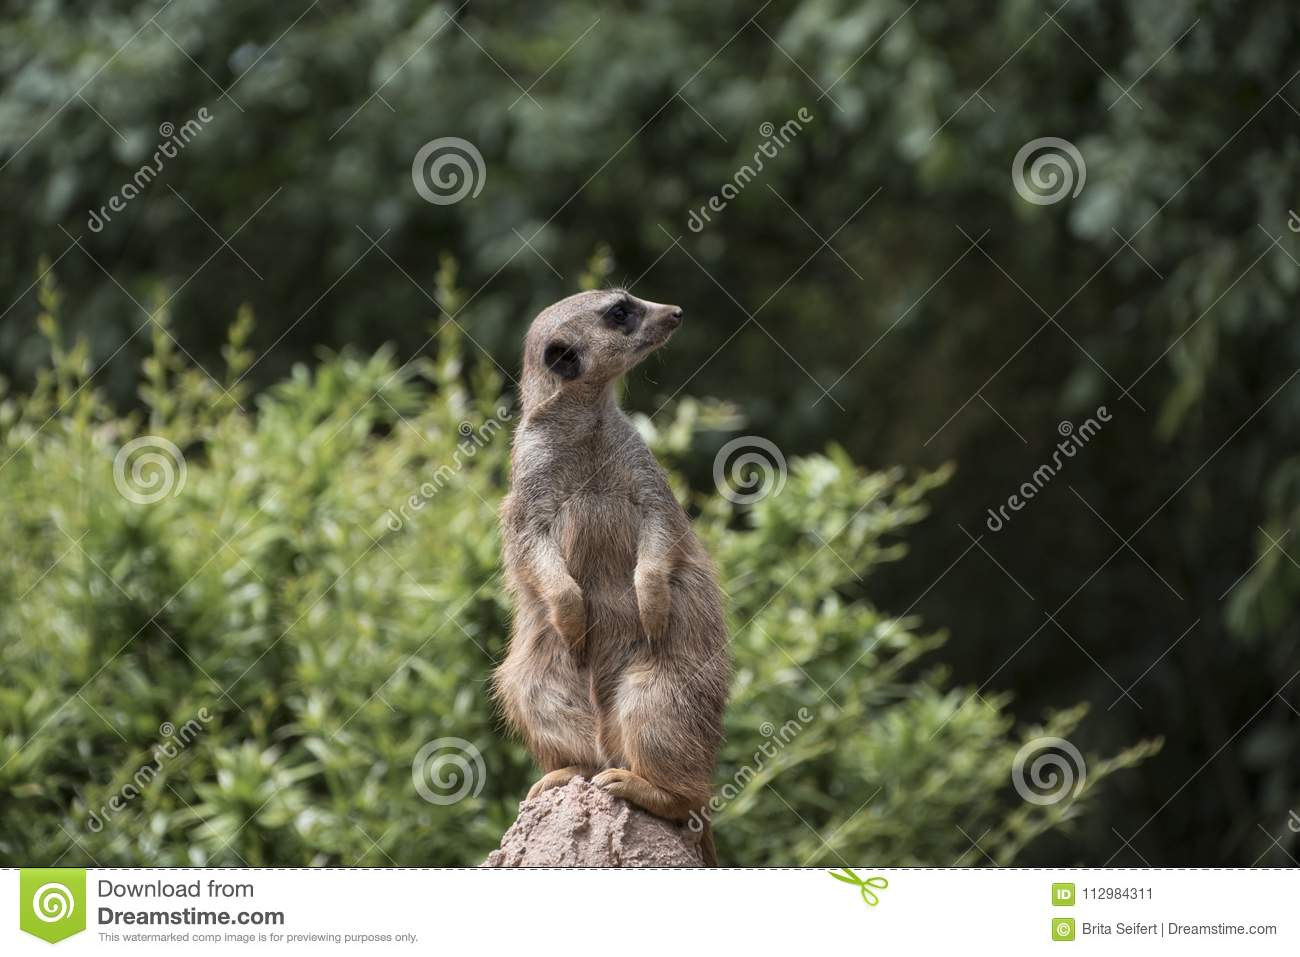 Cute Meerkat Suricata Suricatta on stone guards